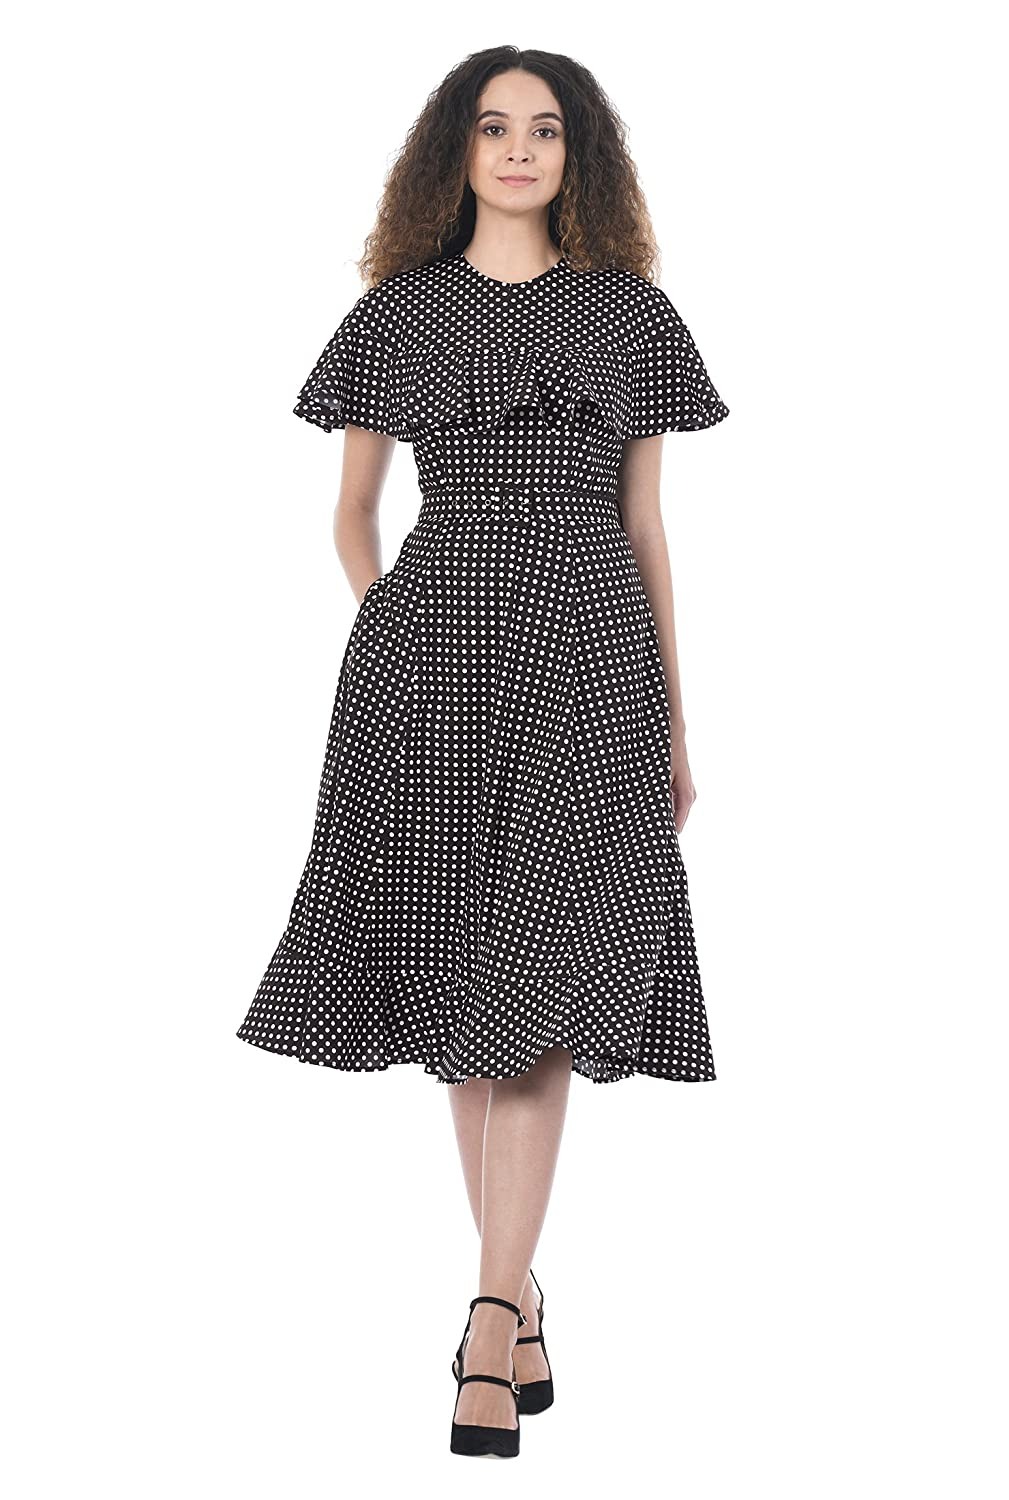 1930s Style Fashion Dresses eShakti Womens Ruffle Polka Dot Print Crepe Dress $69.95 AT vintagedancer.com